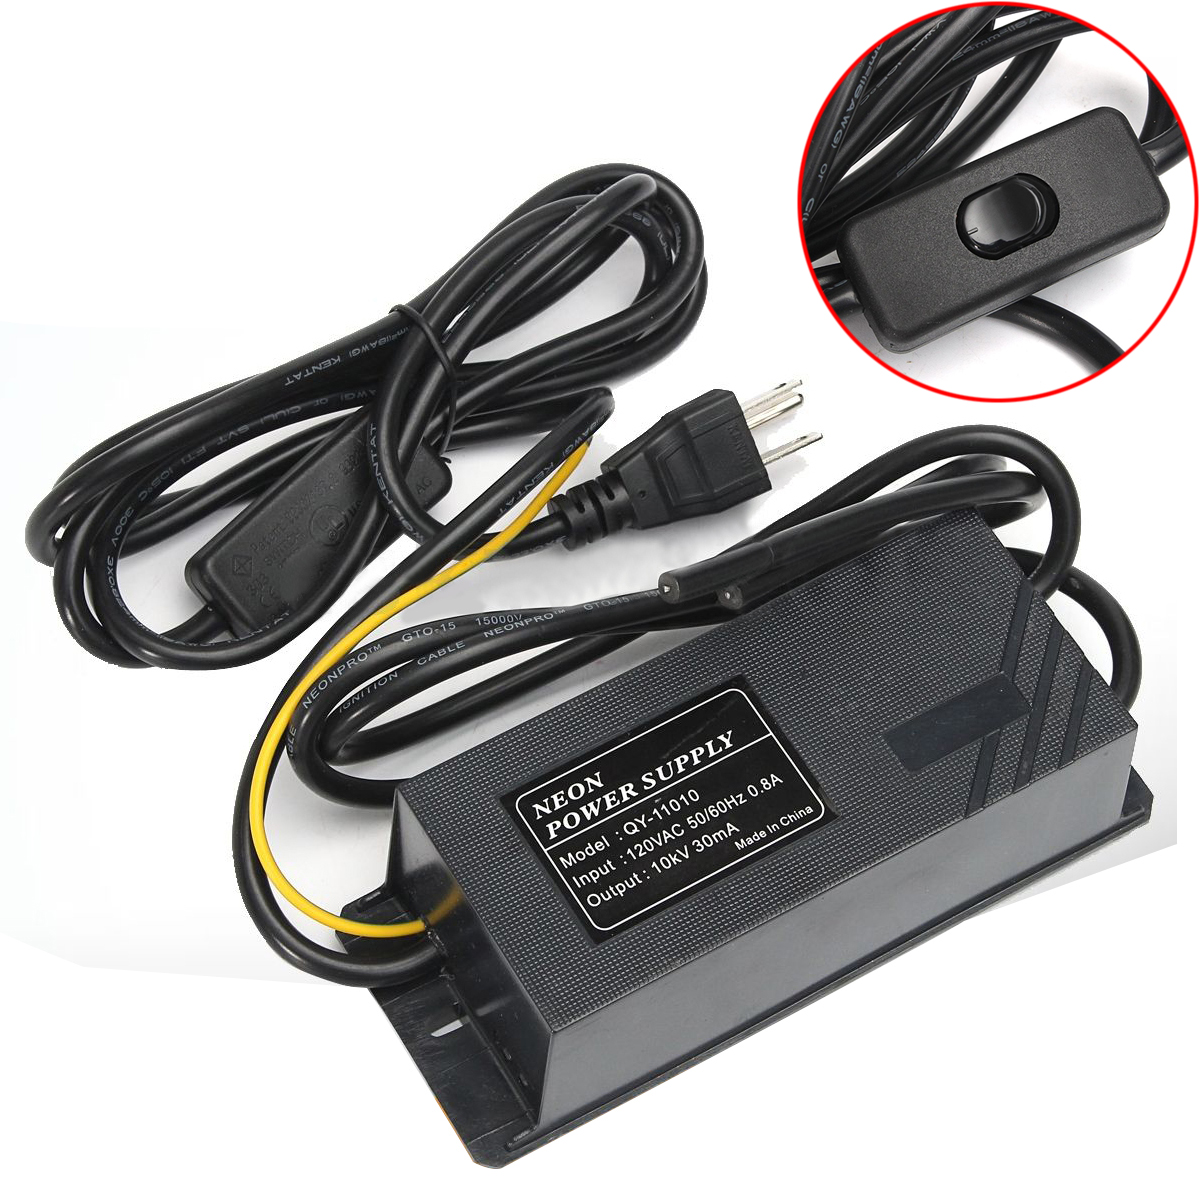 10KV 30mA 120V Black Neon Electronic Transformer Mayitr Practical Waterproof Neon Power Supply Light Rectifier Kit 164*61*48mm<br>